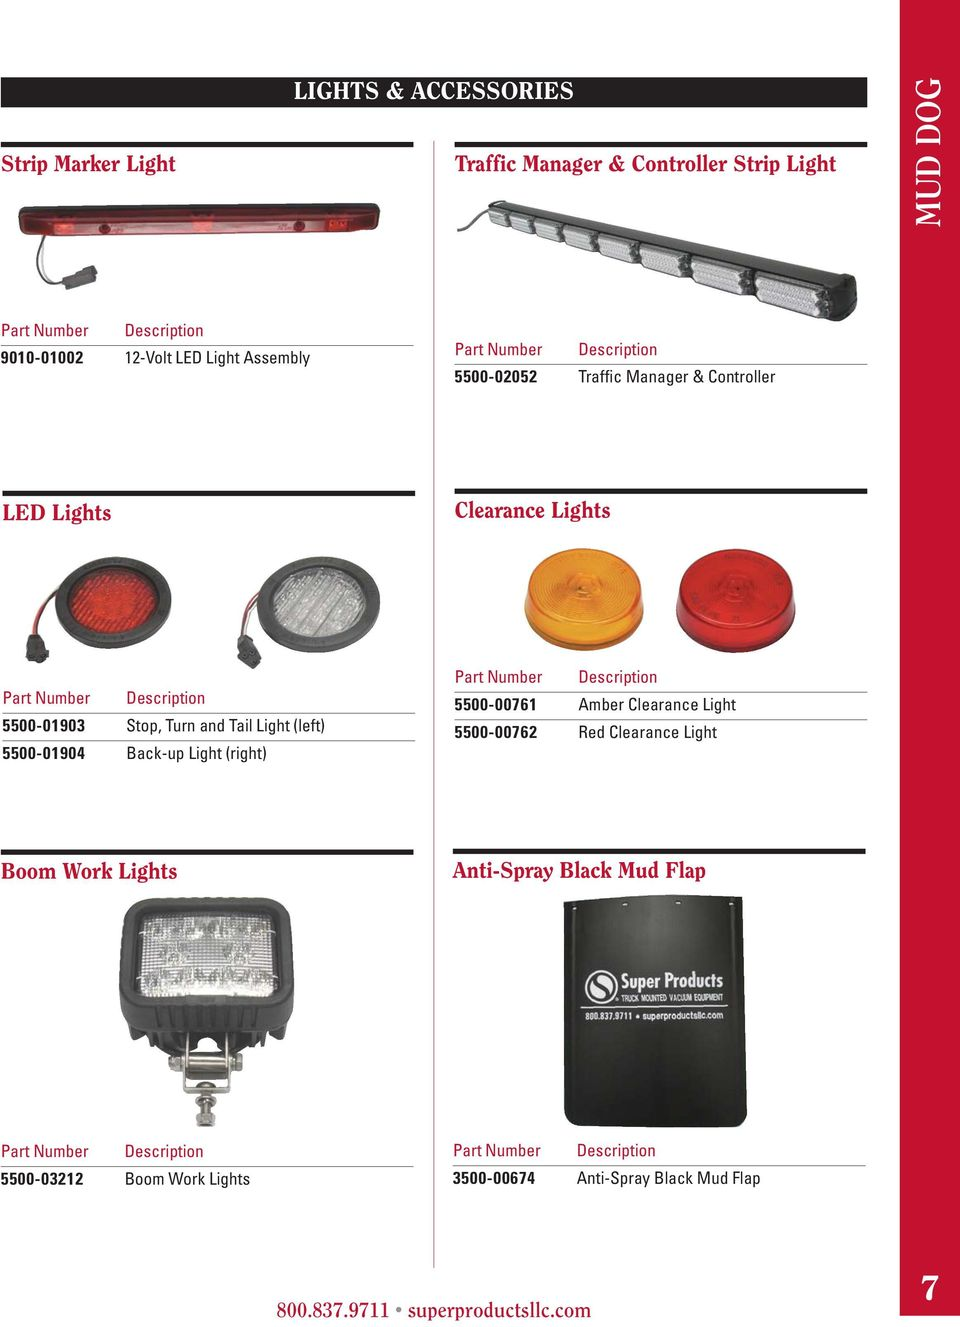 Spare Parts Program Consumables Accessories Centurion 3000 Wiring Diagram Tail Light Left 5500 01904 Back Up Right